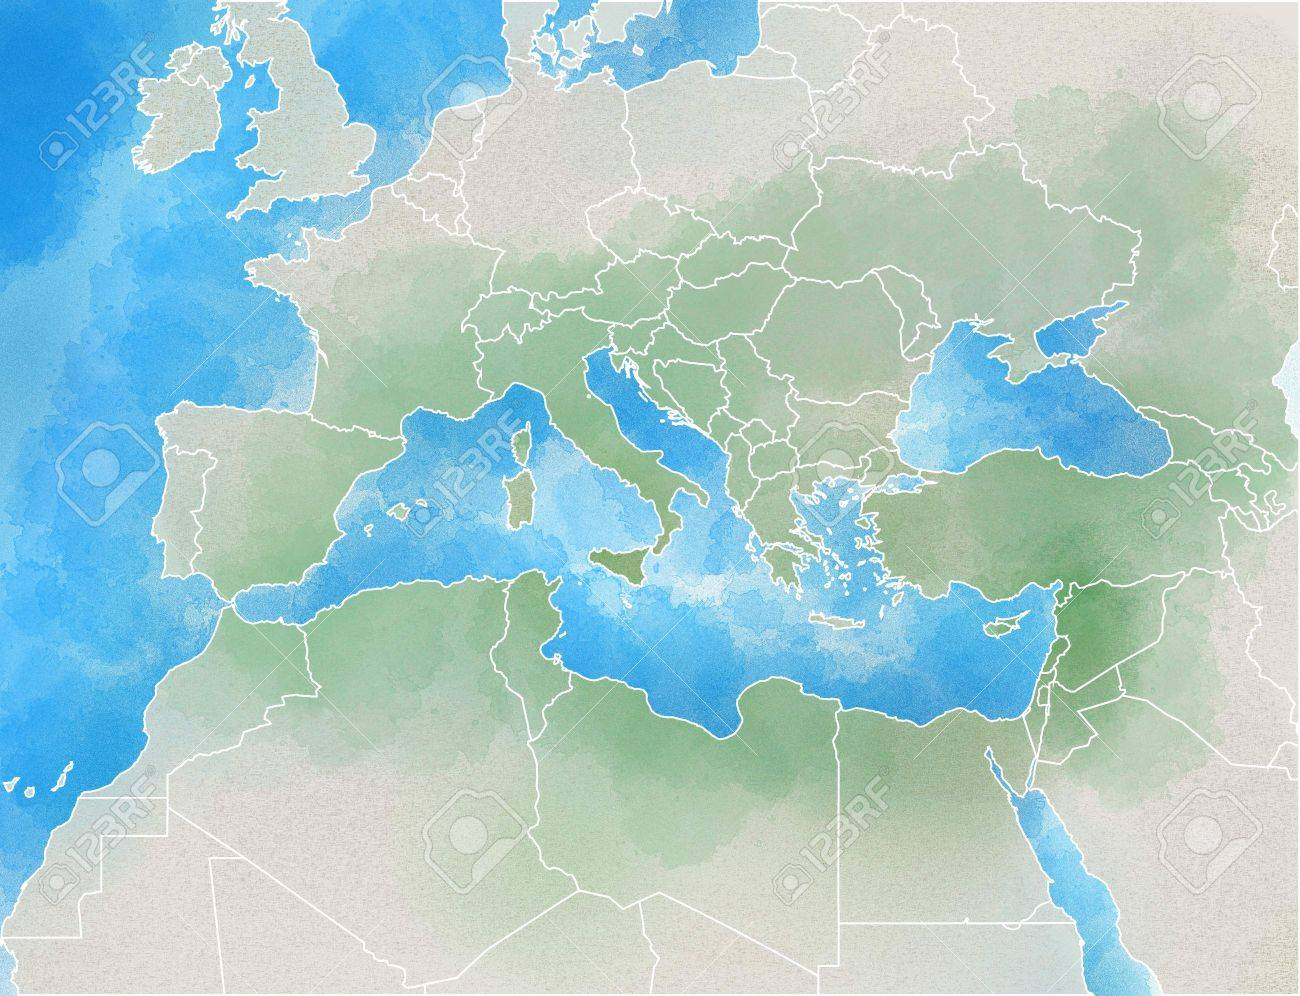 Drawn Map Showing Europe, Mediterranean, Africa, Middle East Stock ...